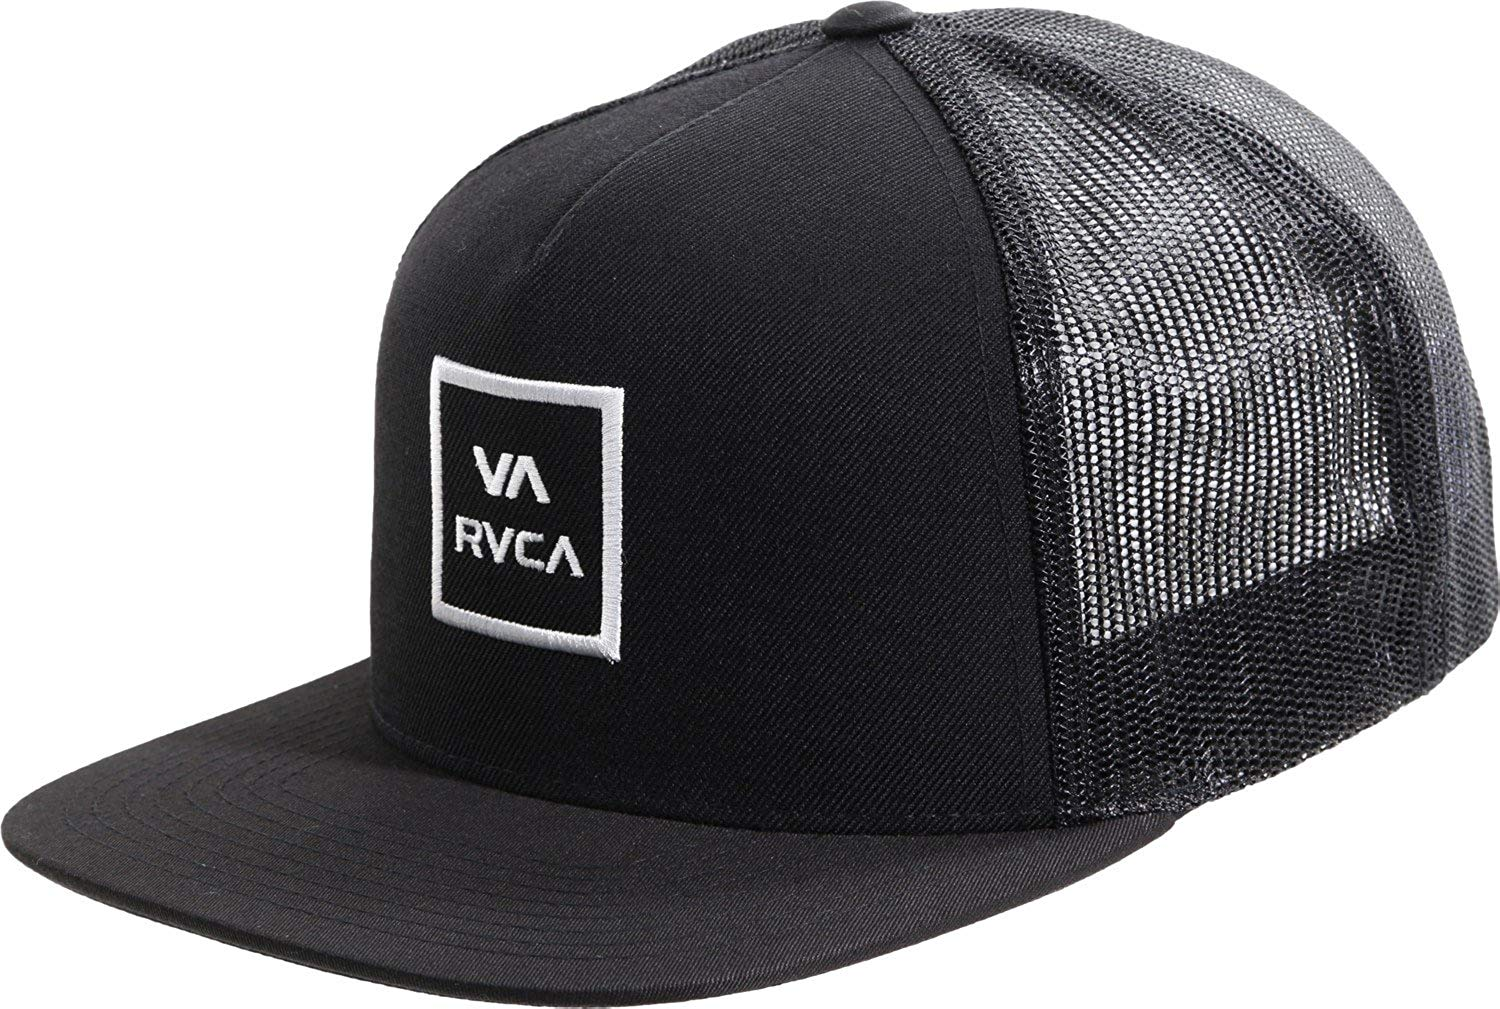 Buy RVCA Mens Barlow Printed Trucker Hat Black One Size in Cheap ... 6d26839f8ad4